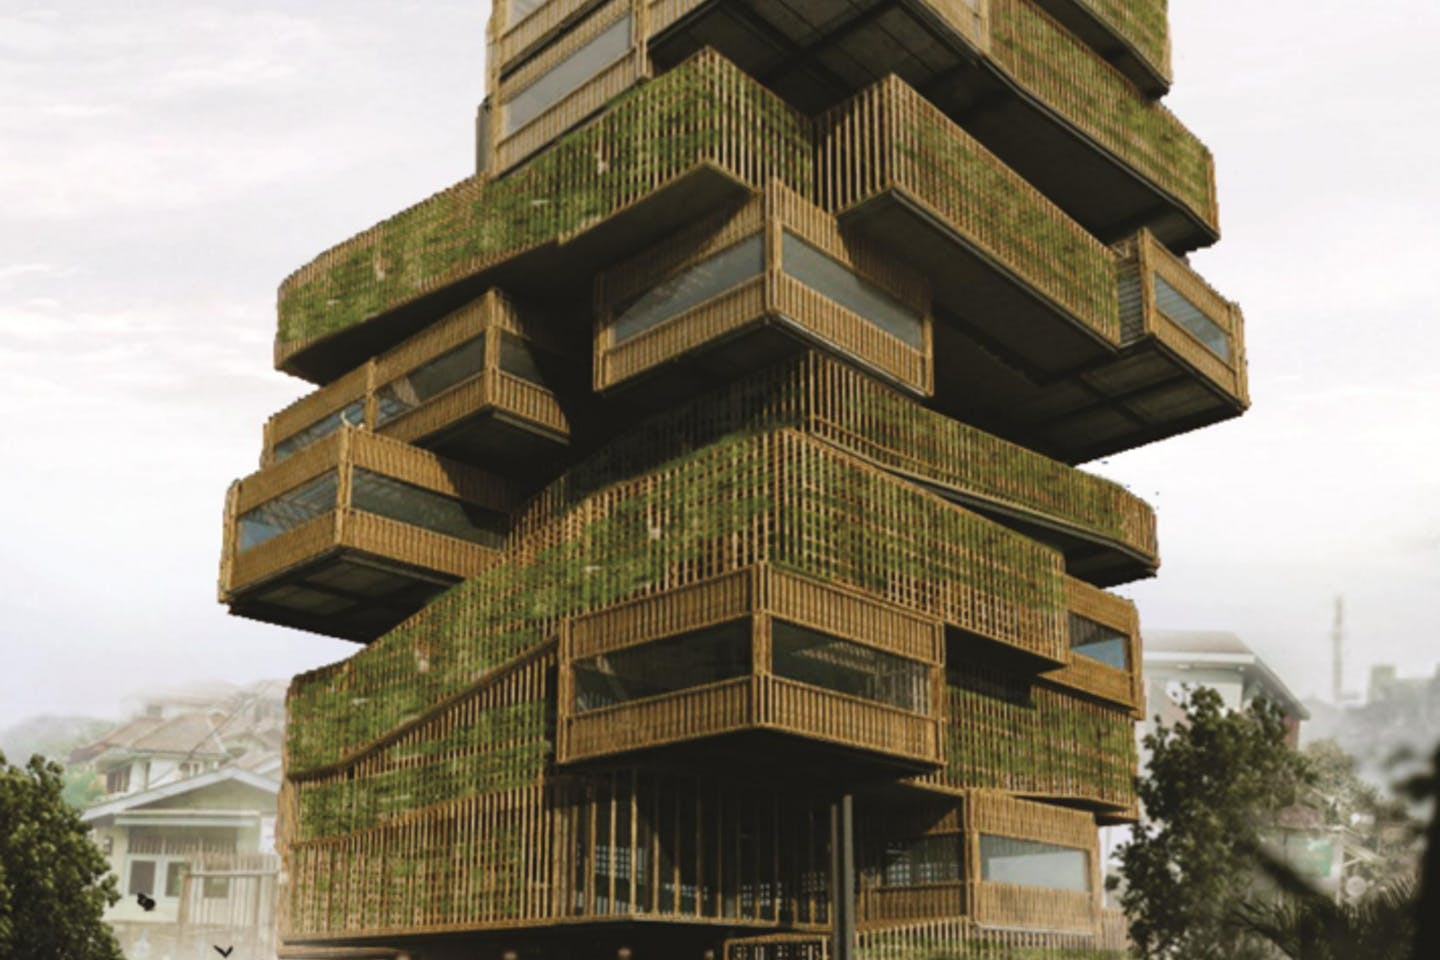 The winner of the International Tropical Architecture Design Competition, Vertical Farm Acupunture, by Ridwan Arifin and his team. The 11-storey building in Bandung has facilities for hydroponic farming and water harvesting. Image: ITAD